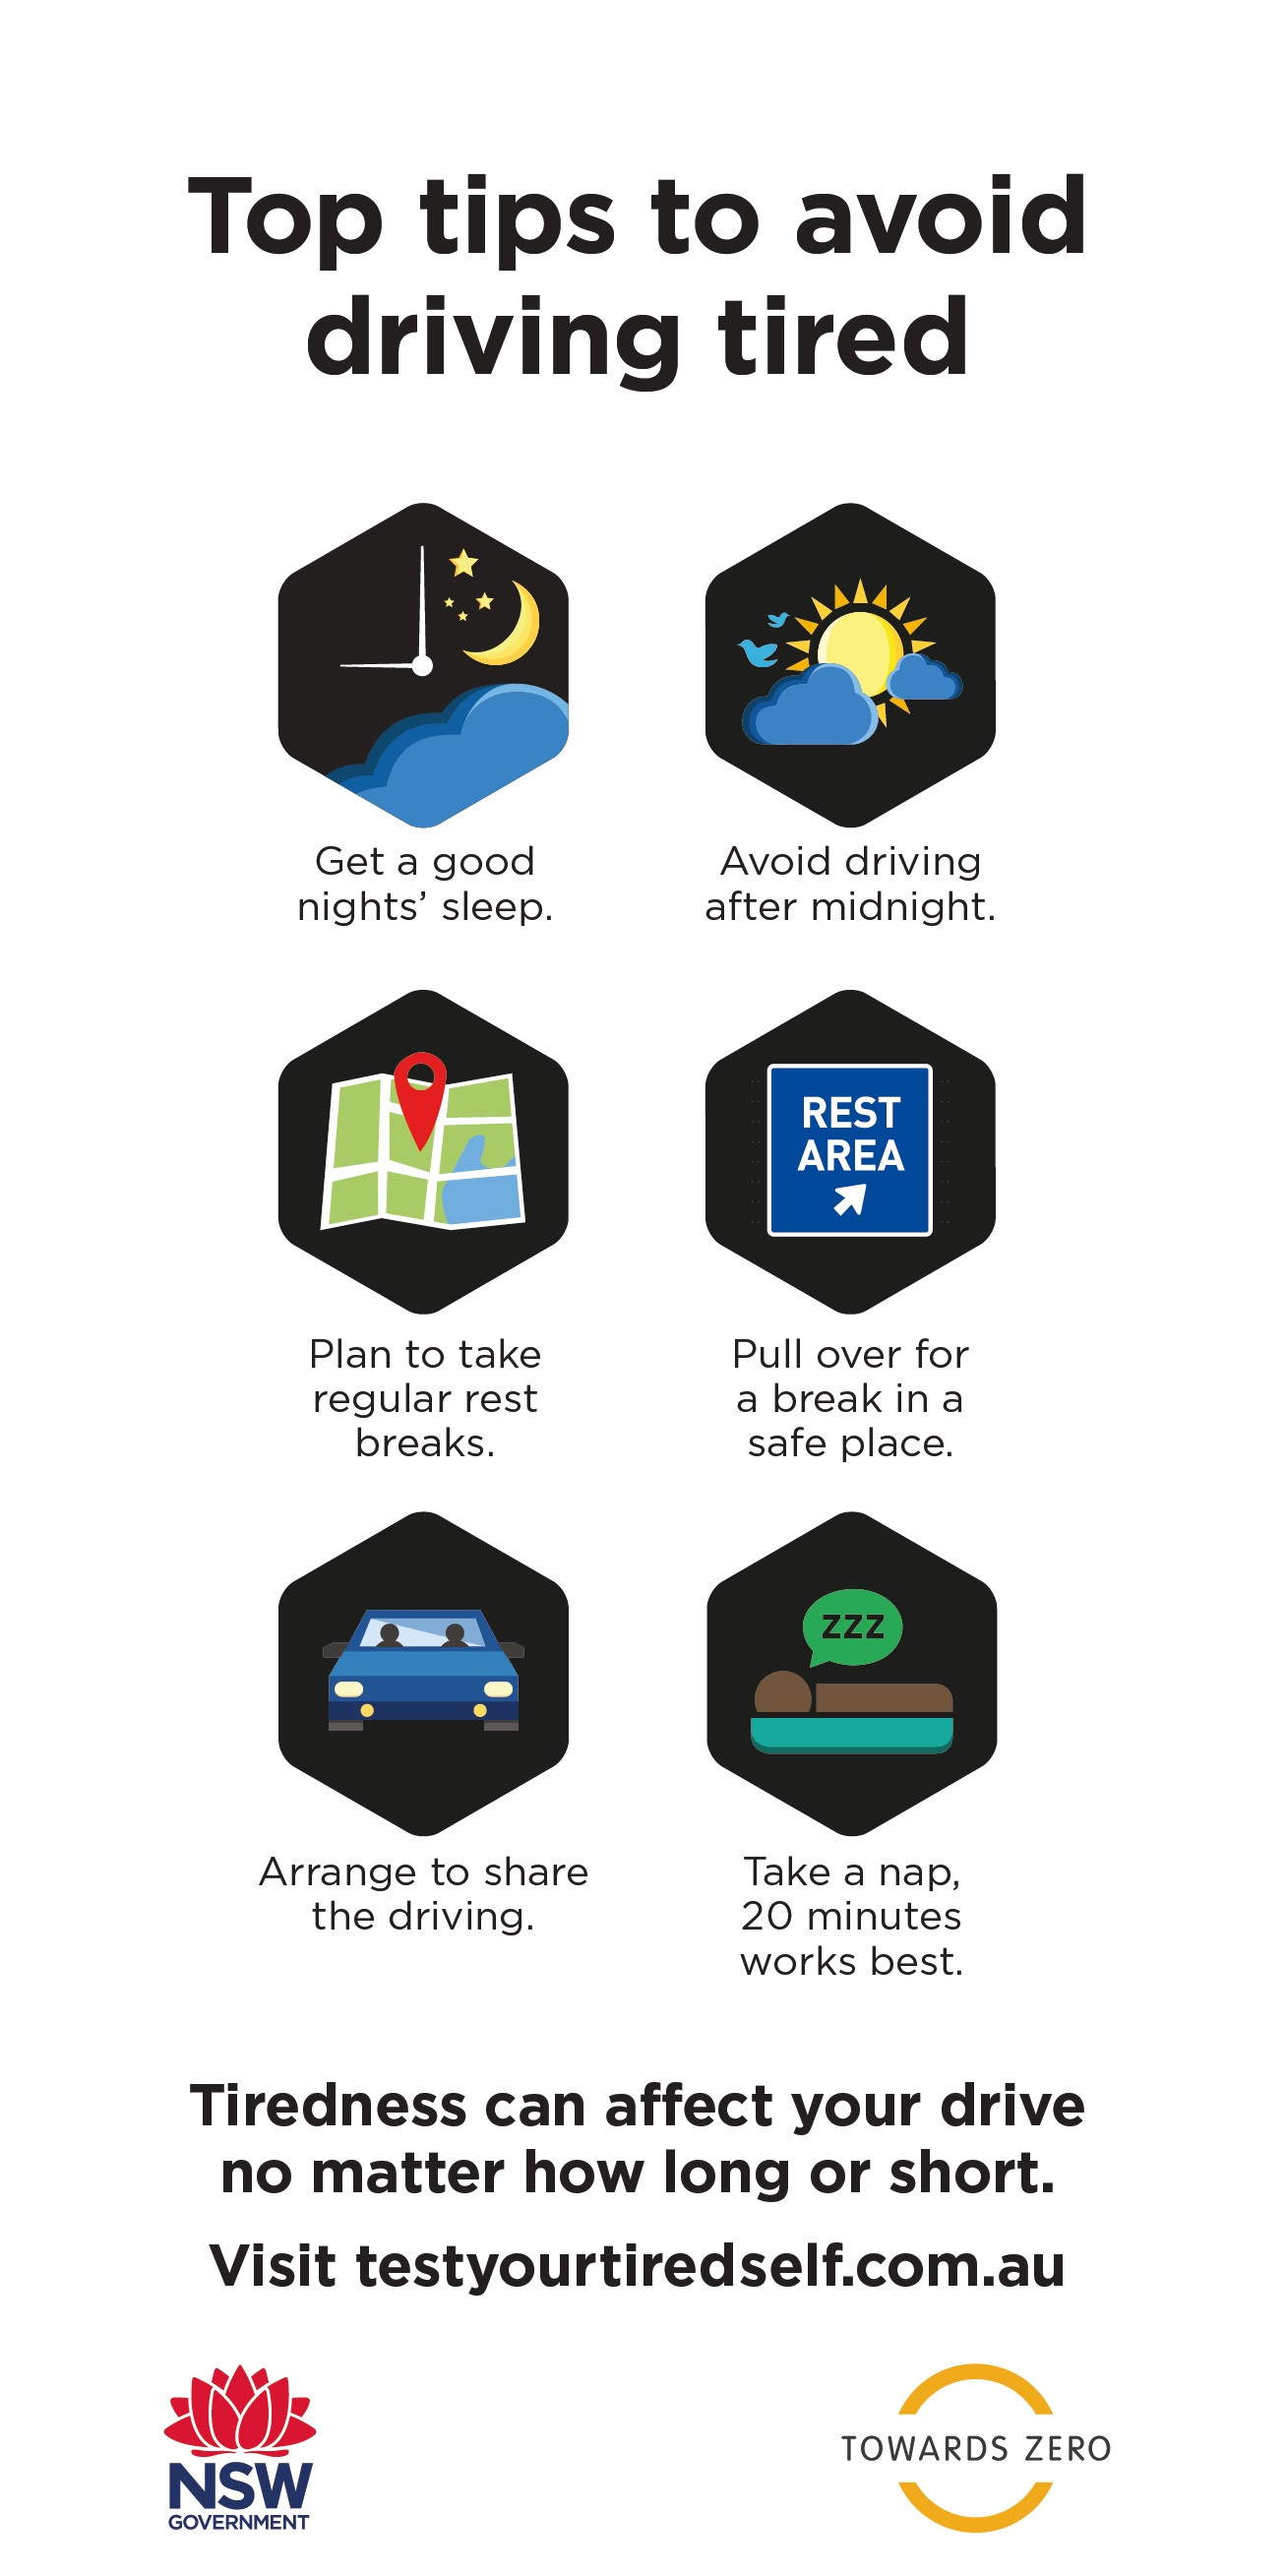 Top tips to avoid driving tired